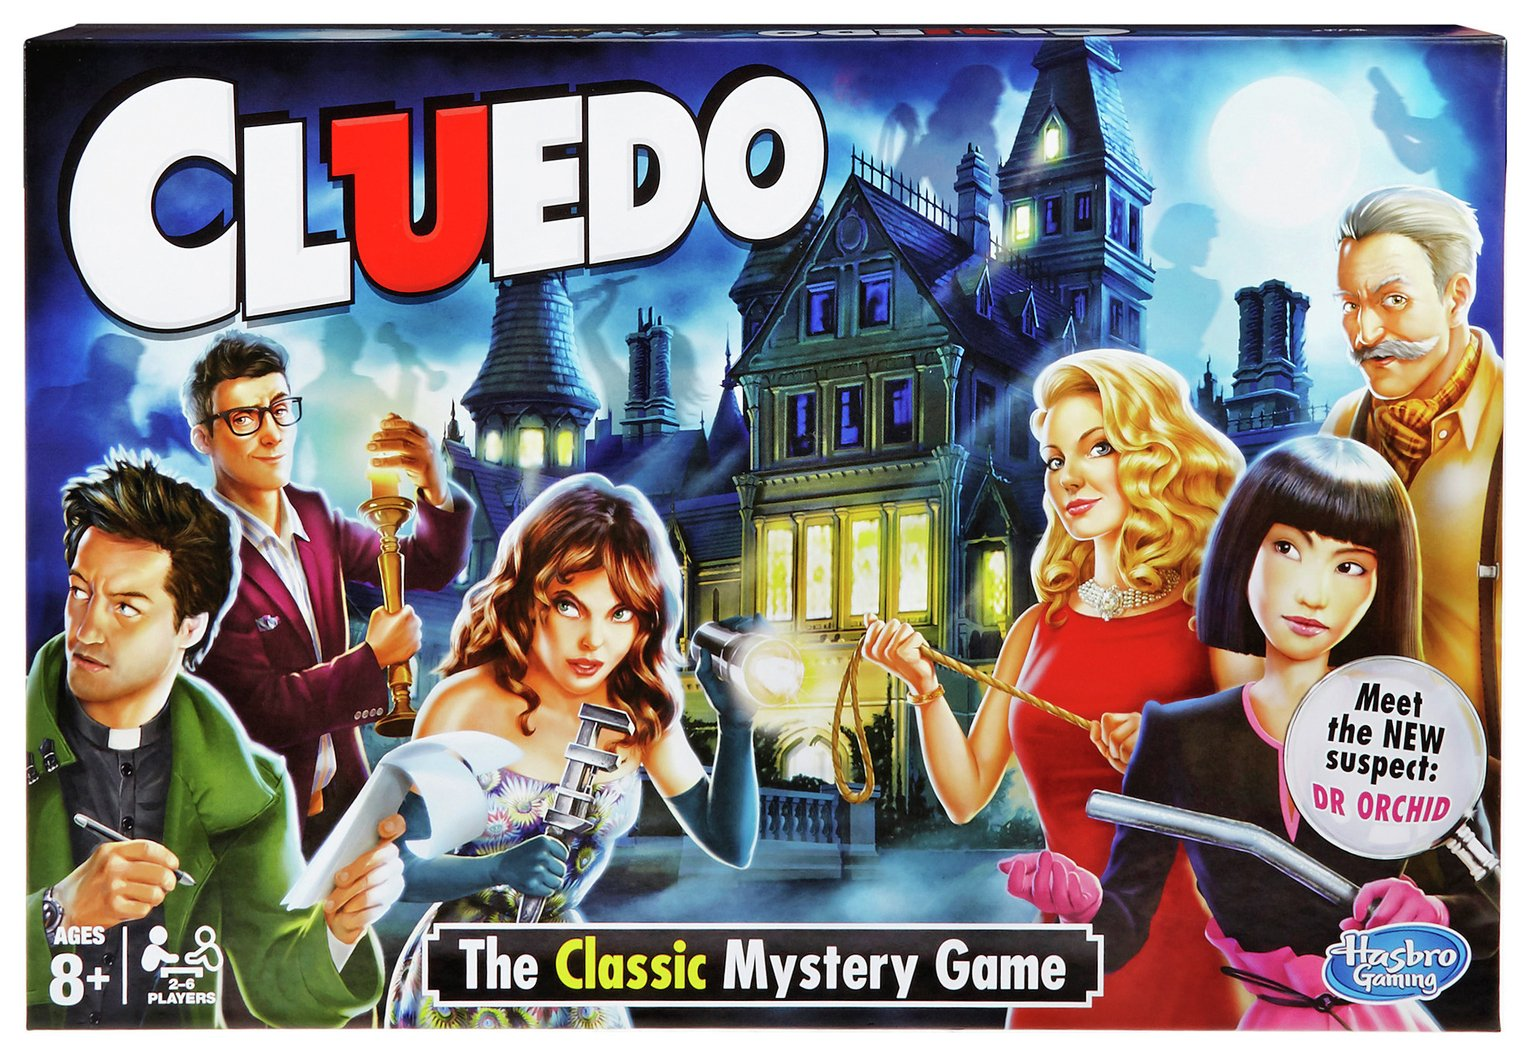 Image of Cluedo Classic Board Game from Hasbro Gaming